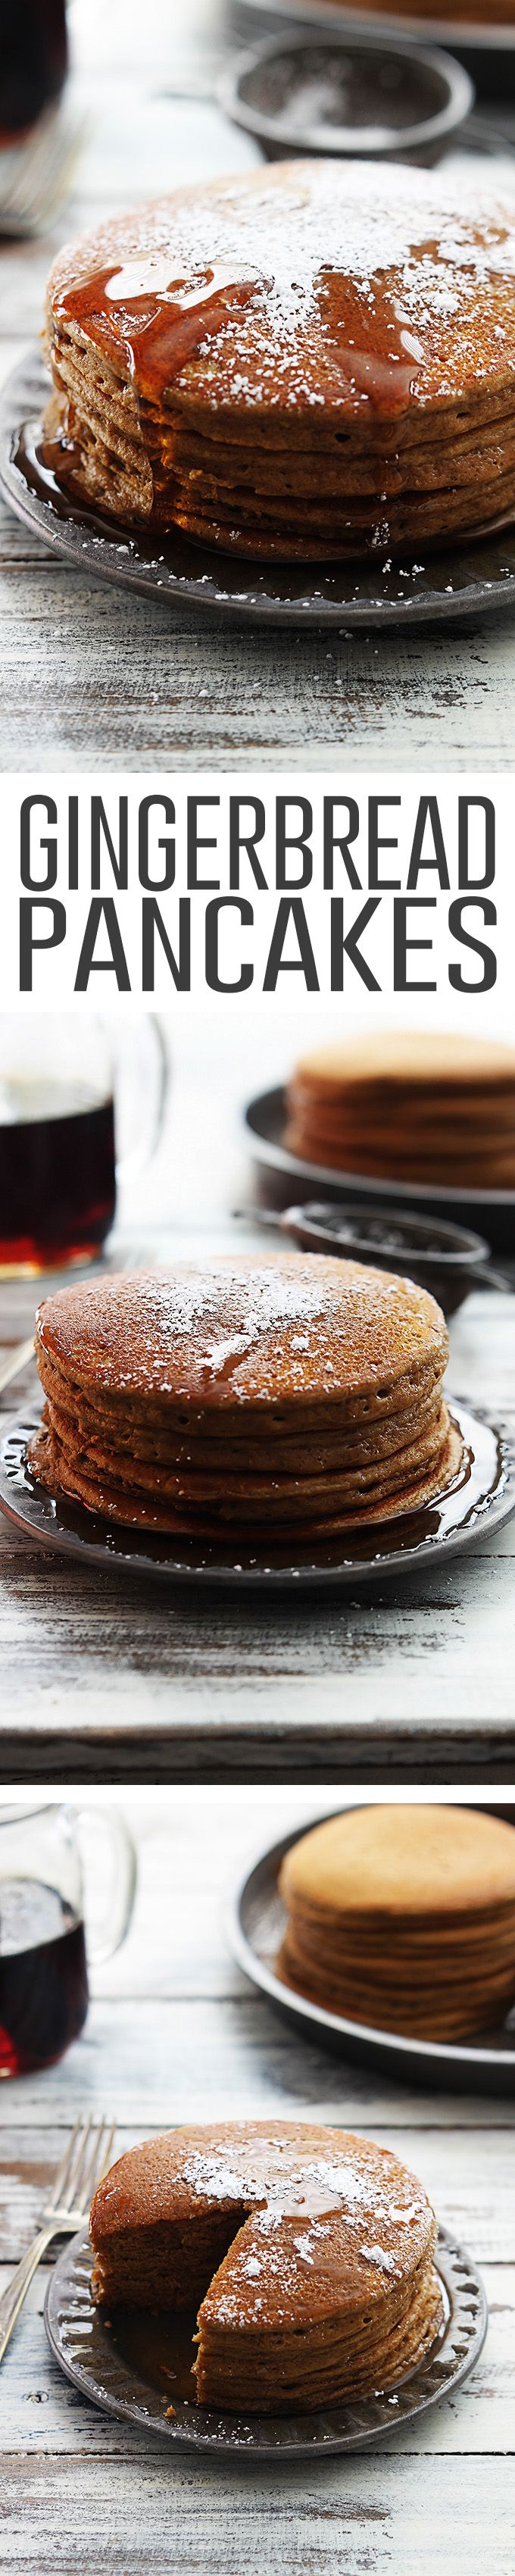 Fluffy Gingerbread Pancakes with Cinnamon Maple Syrup.